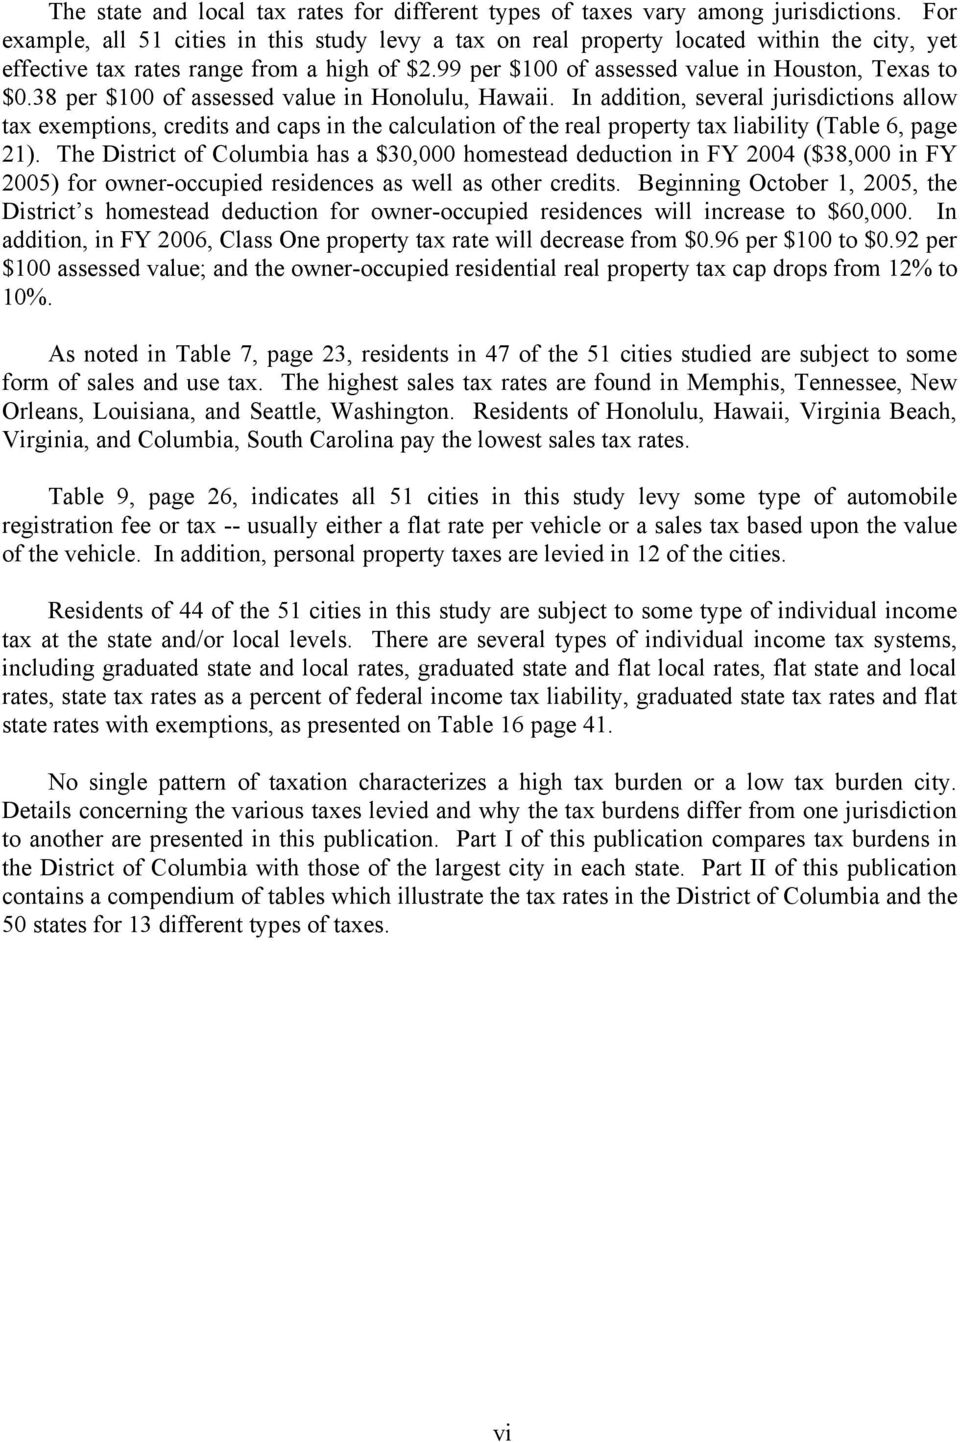 38 per $100 of assessed value in Honolulu, Hawaii. In addition, several jurisdictions allow tax exemptions, credits and caps in the calculation of the real property tax liability (Table 6, page 21).